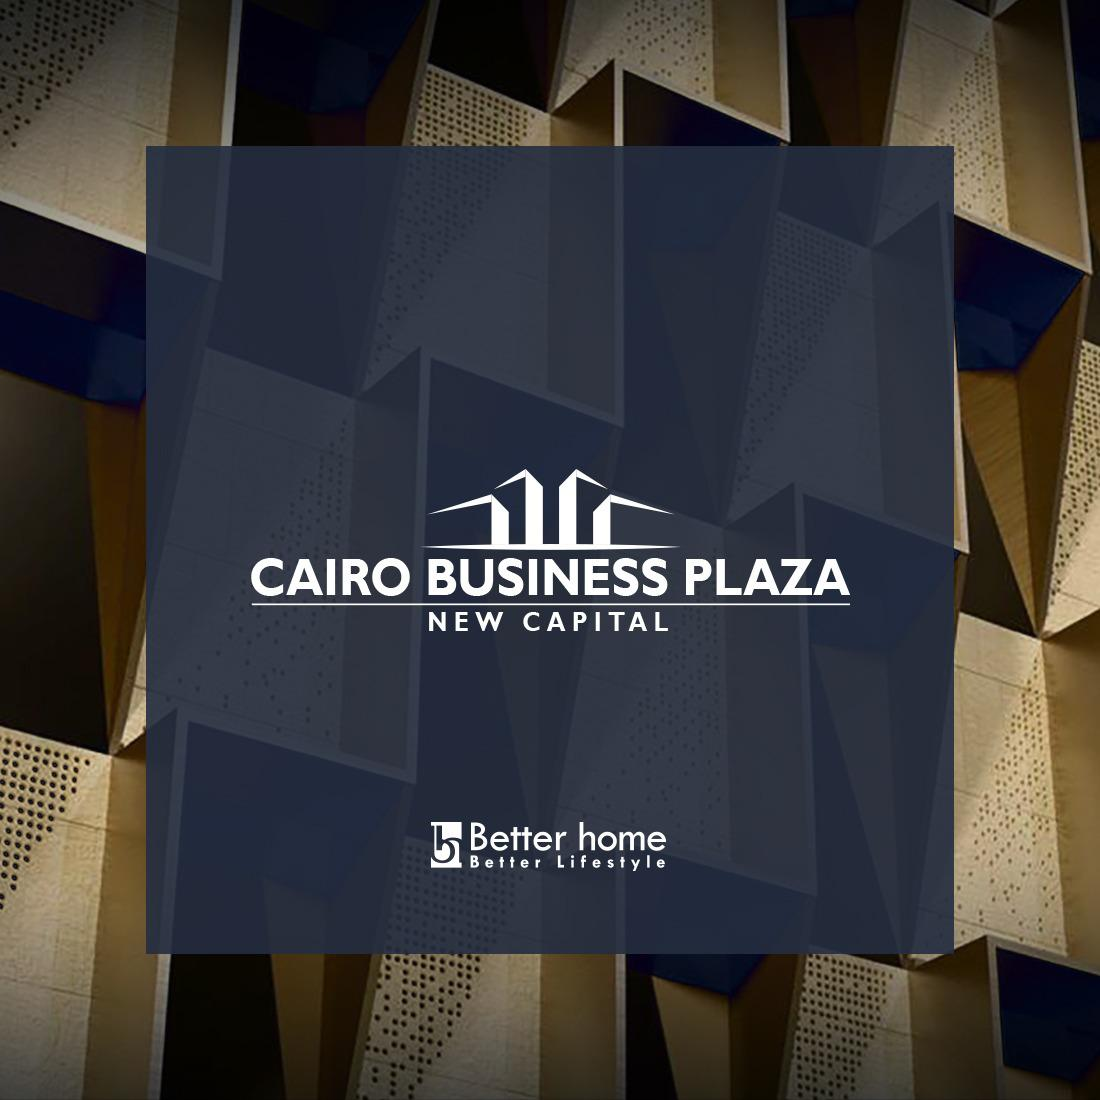 Cairo Business Plaza new capital|Better home